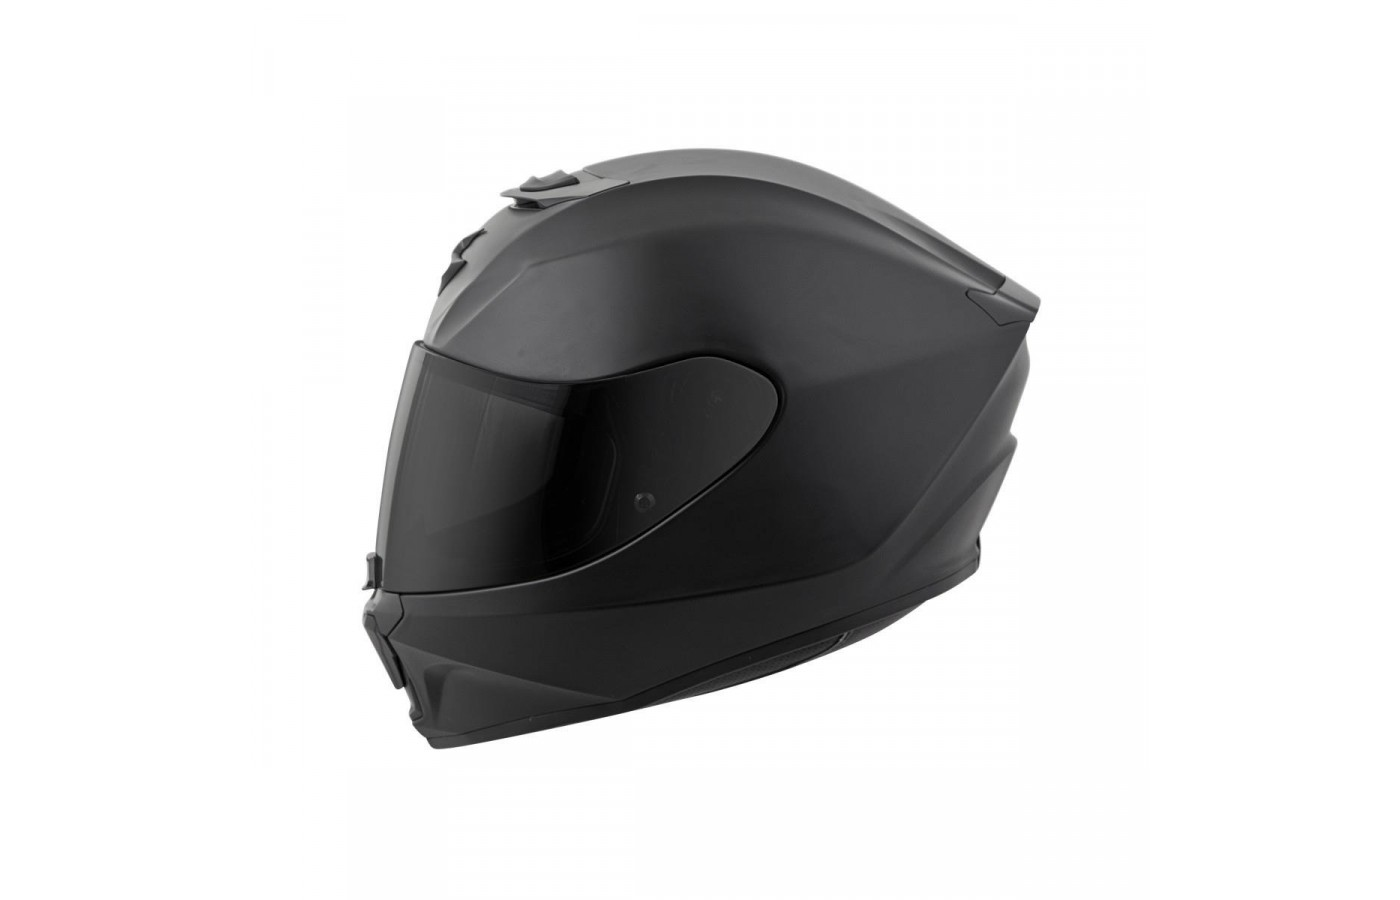 This helmet is available at an affordable price.